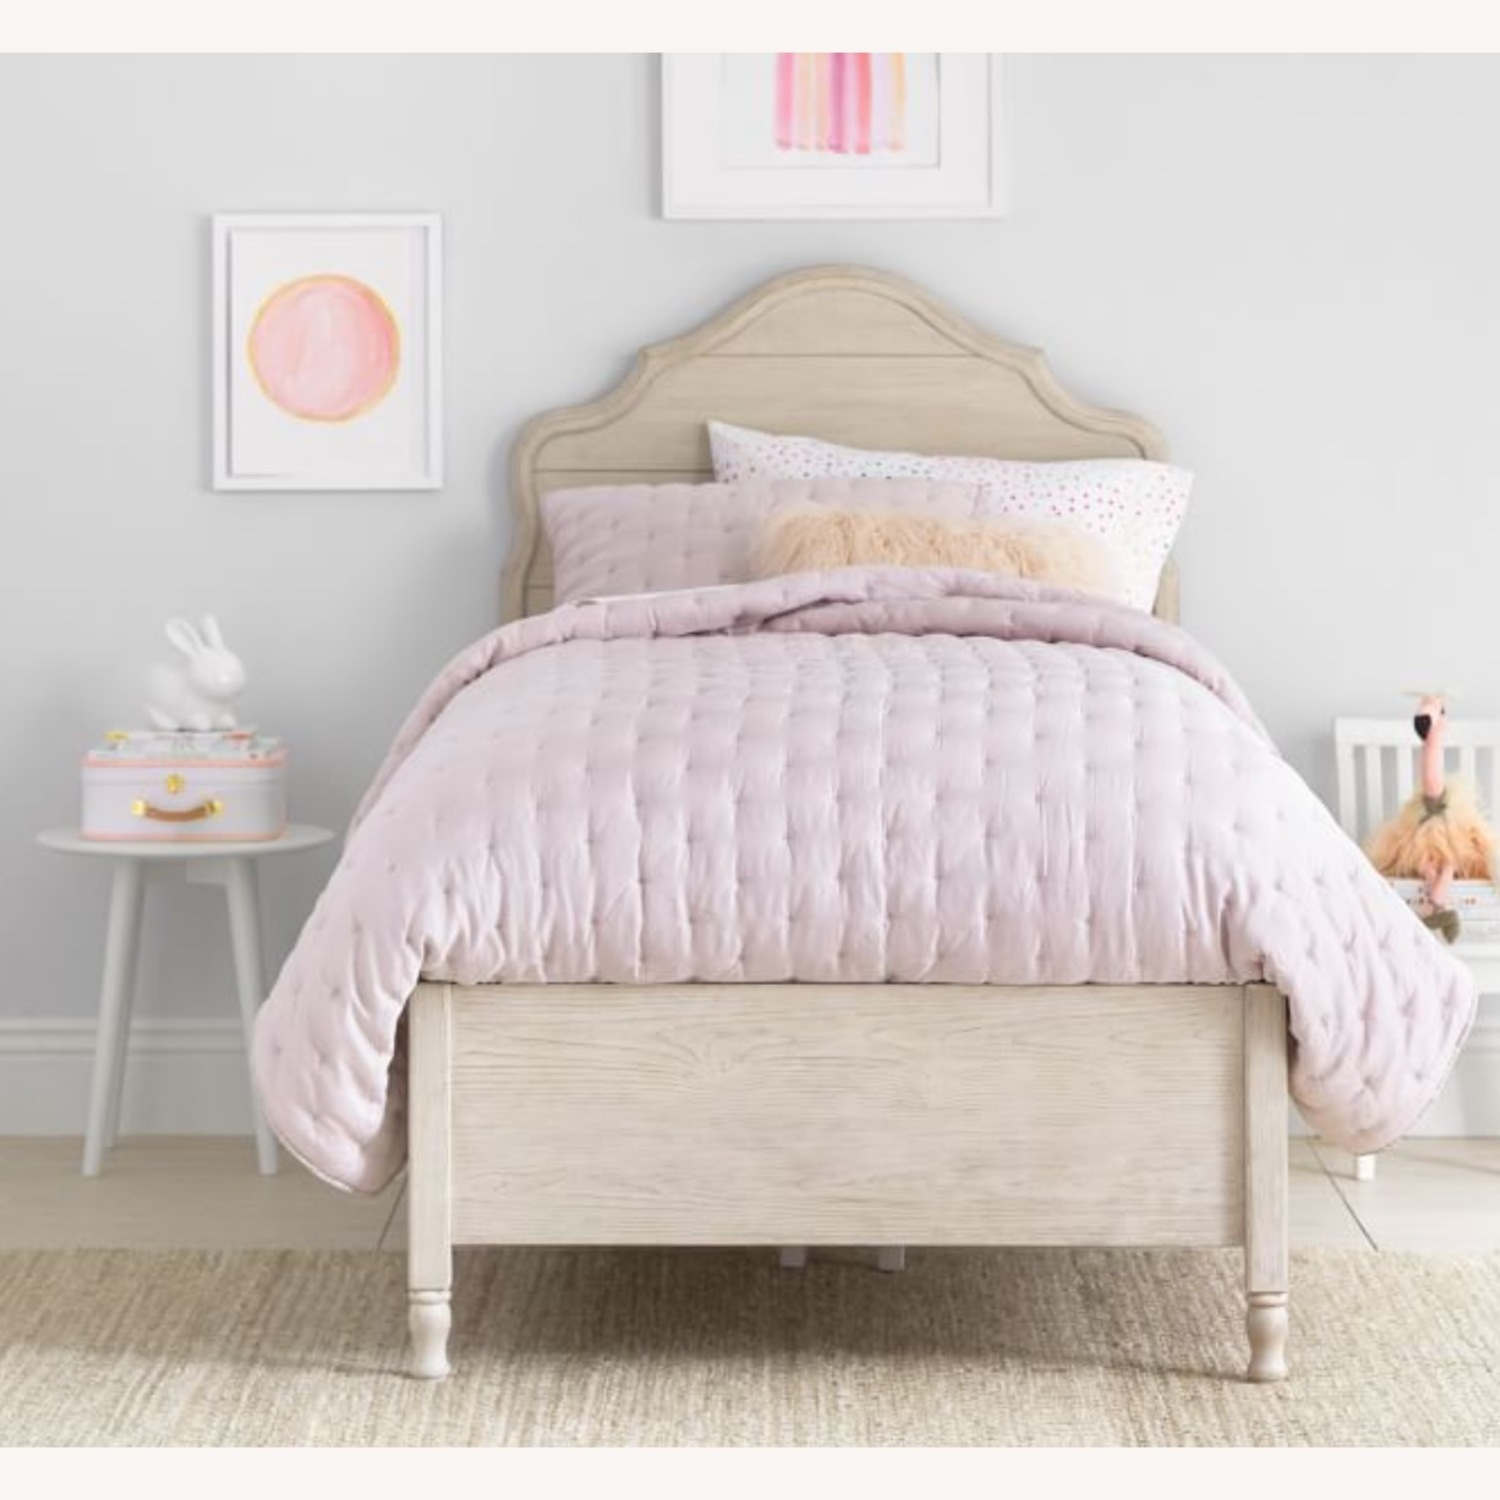 Pottery Barn Twin Bed - Juliette Collection - image-0